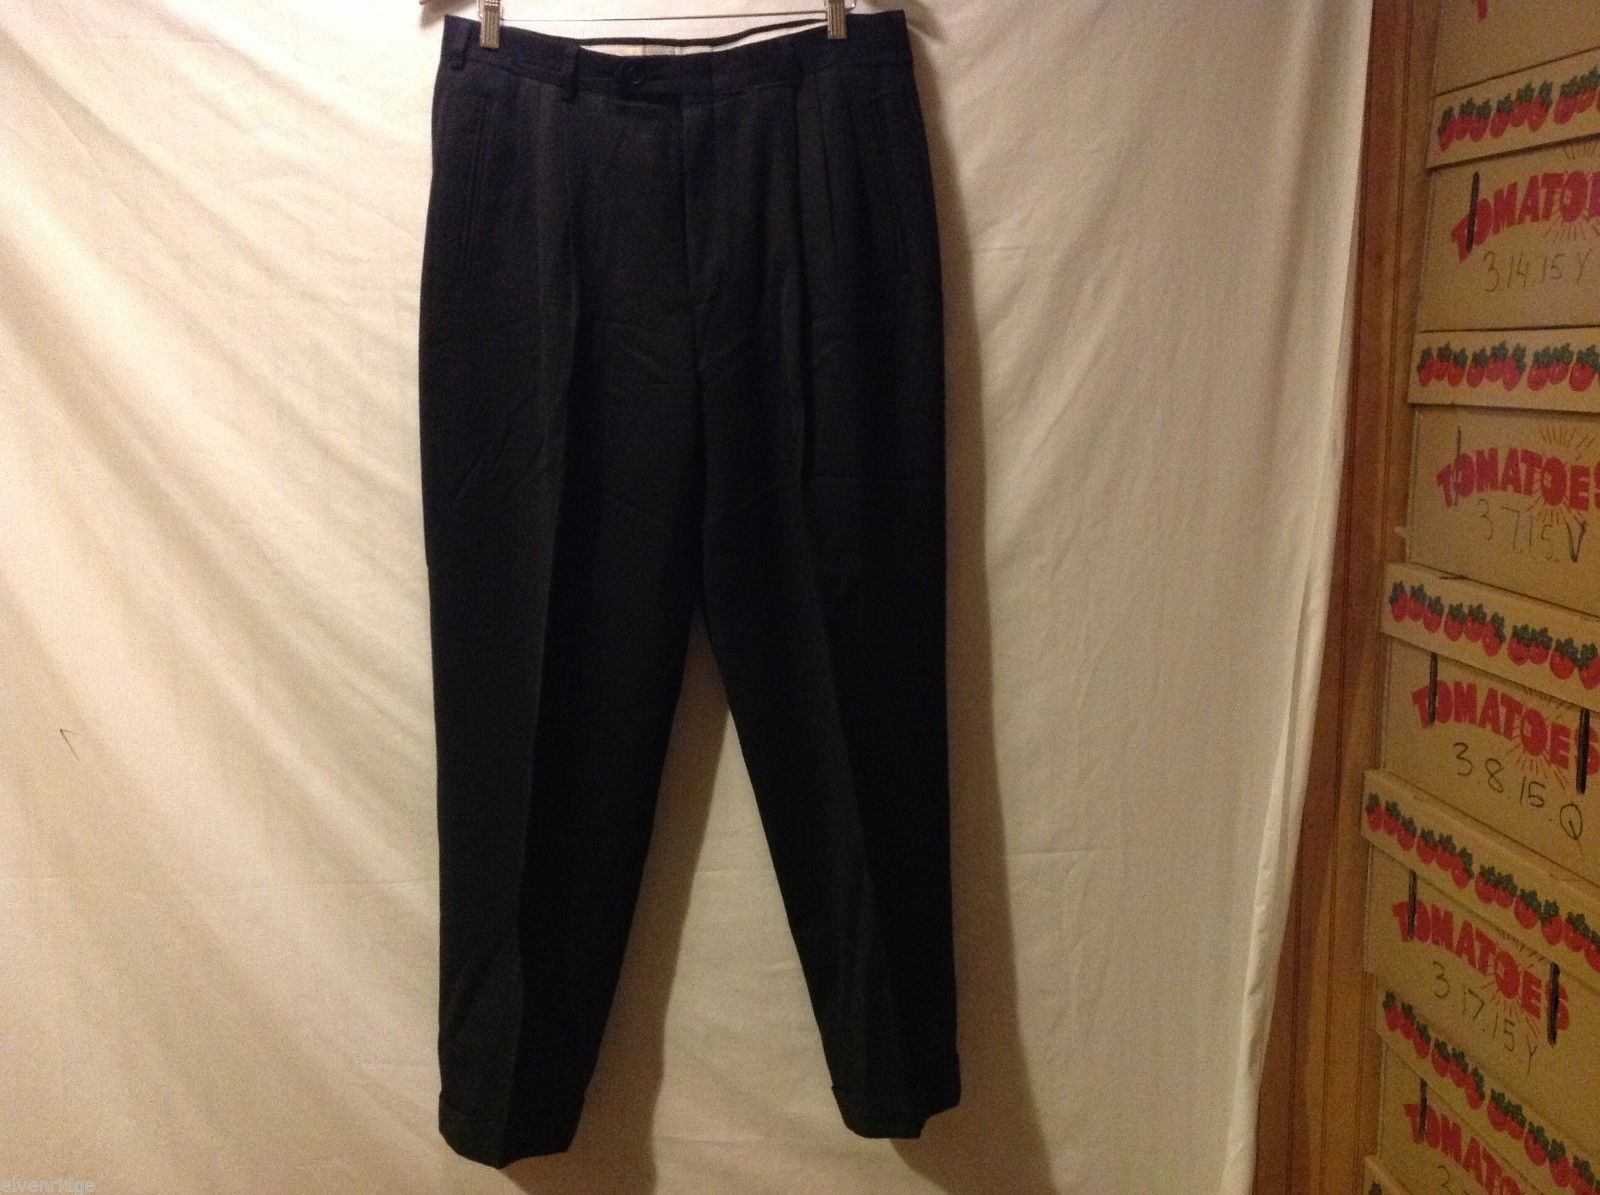 Hastings Traditions Mens Black Dress Pants